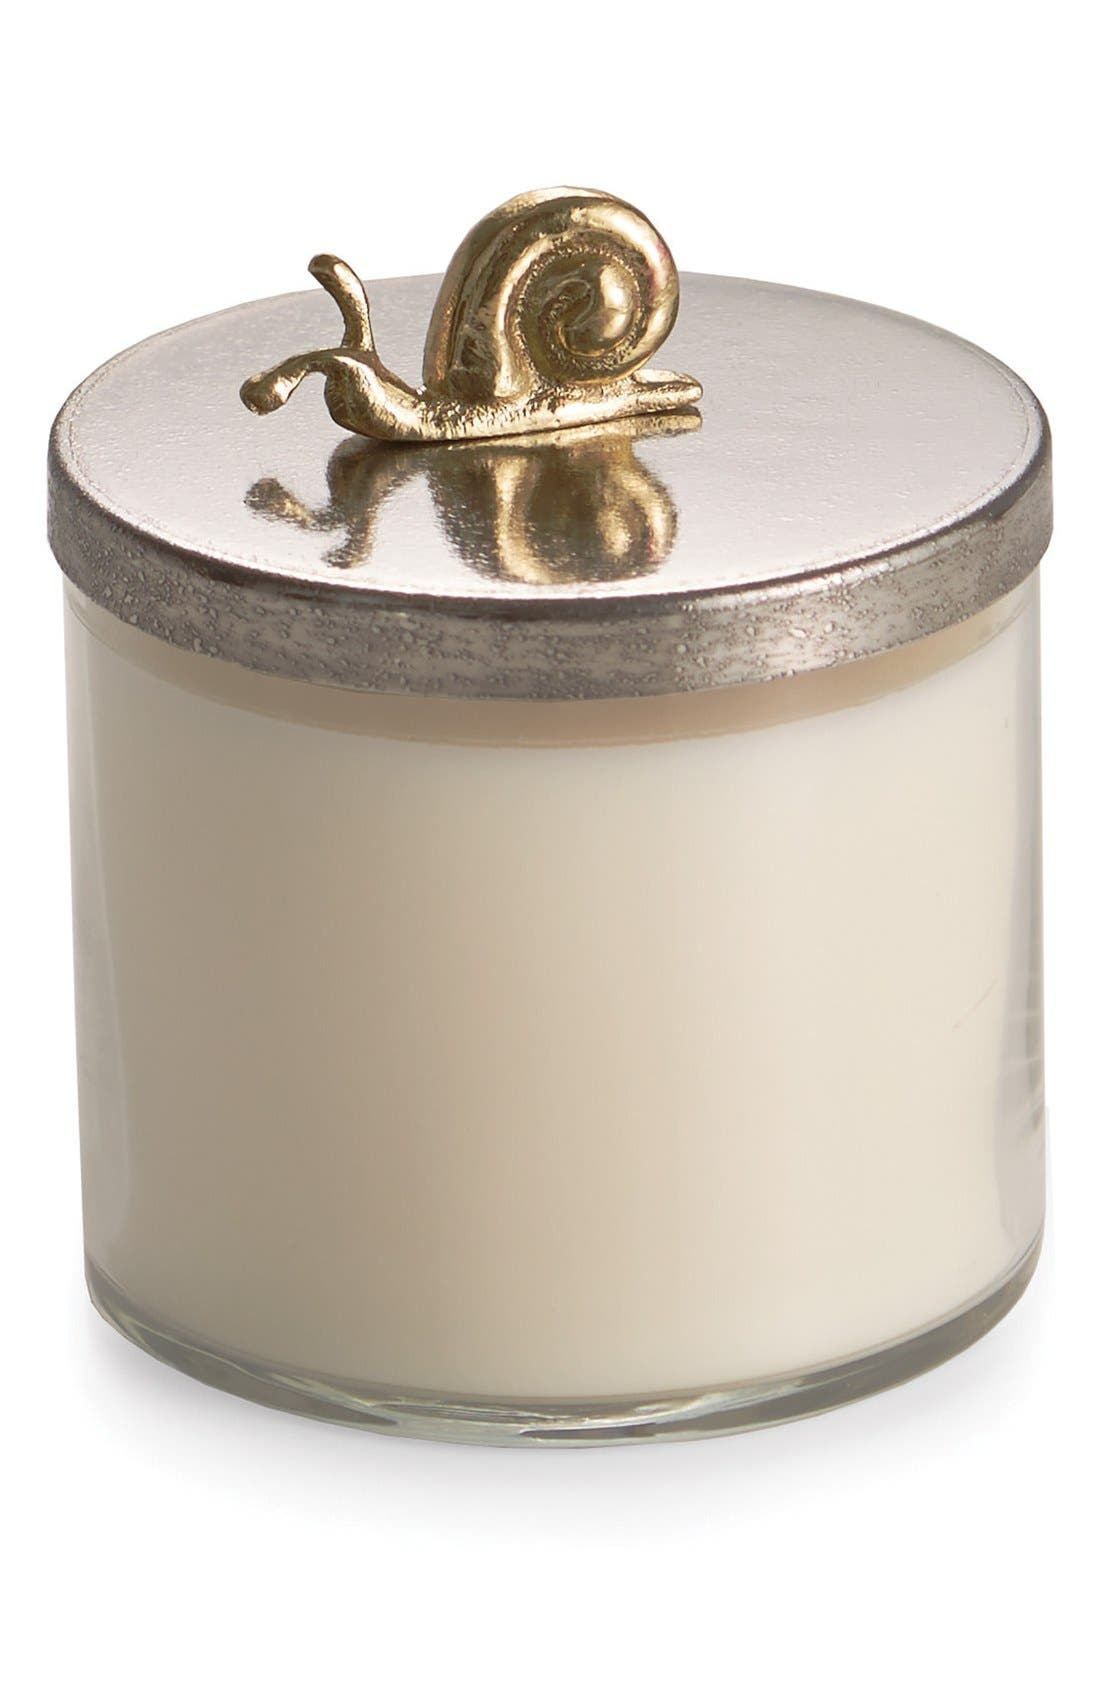 Alternate Image 1 Selected - Michael Aram 'Enchanted Garden' Soy Wax Candle